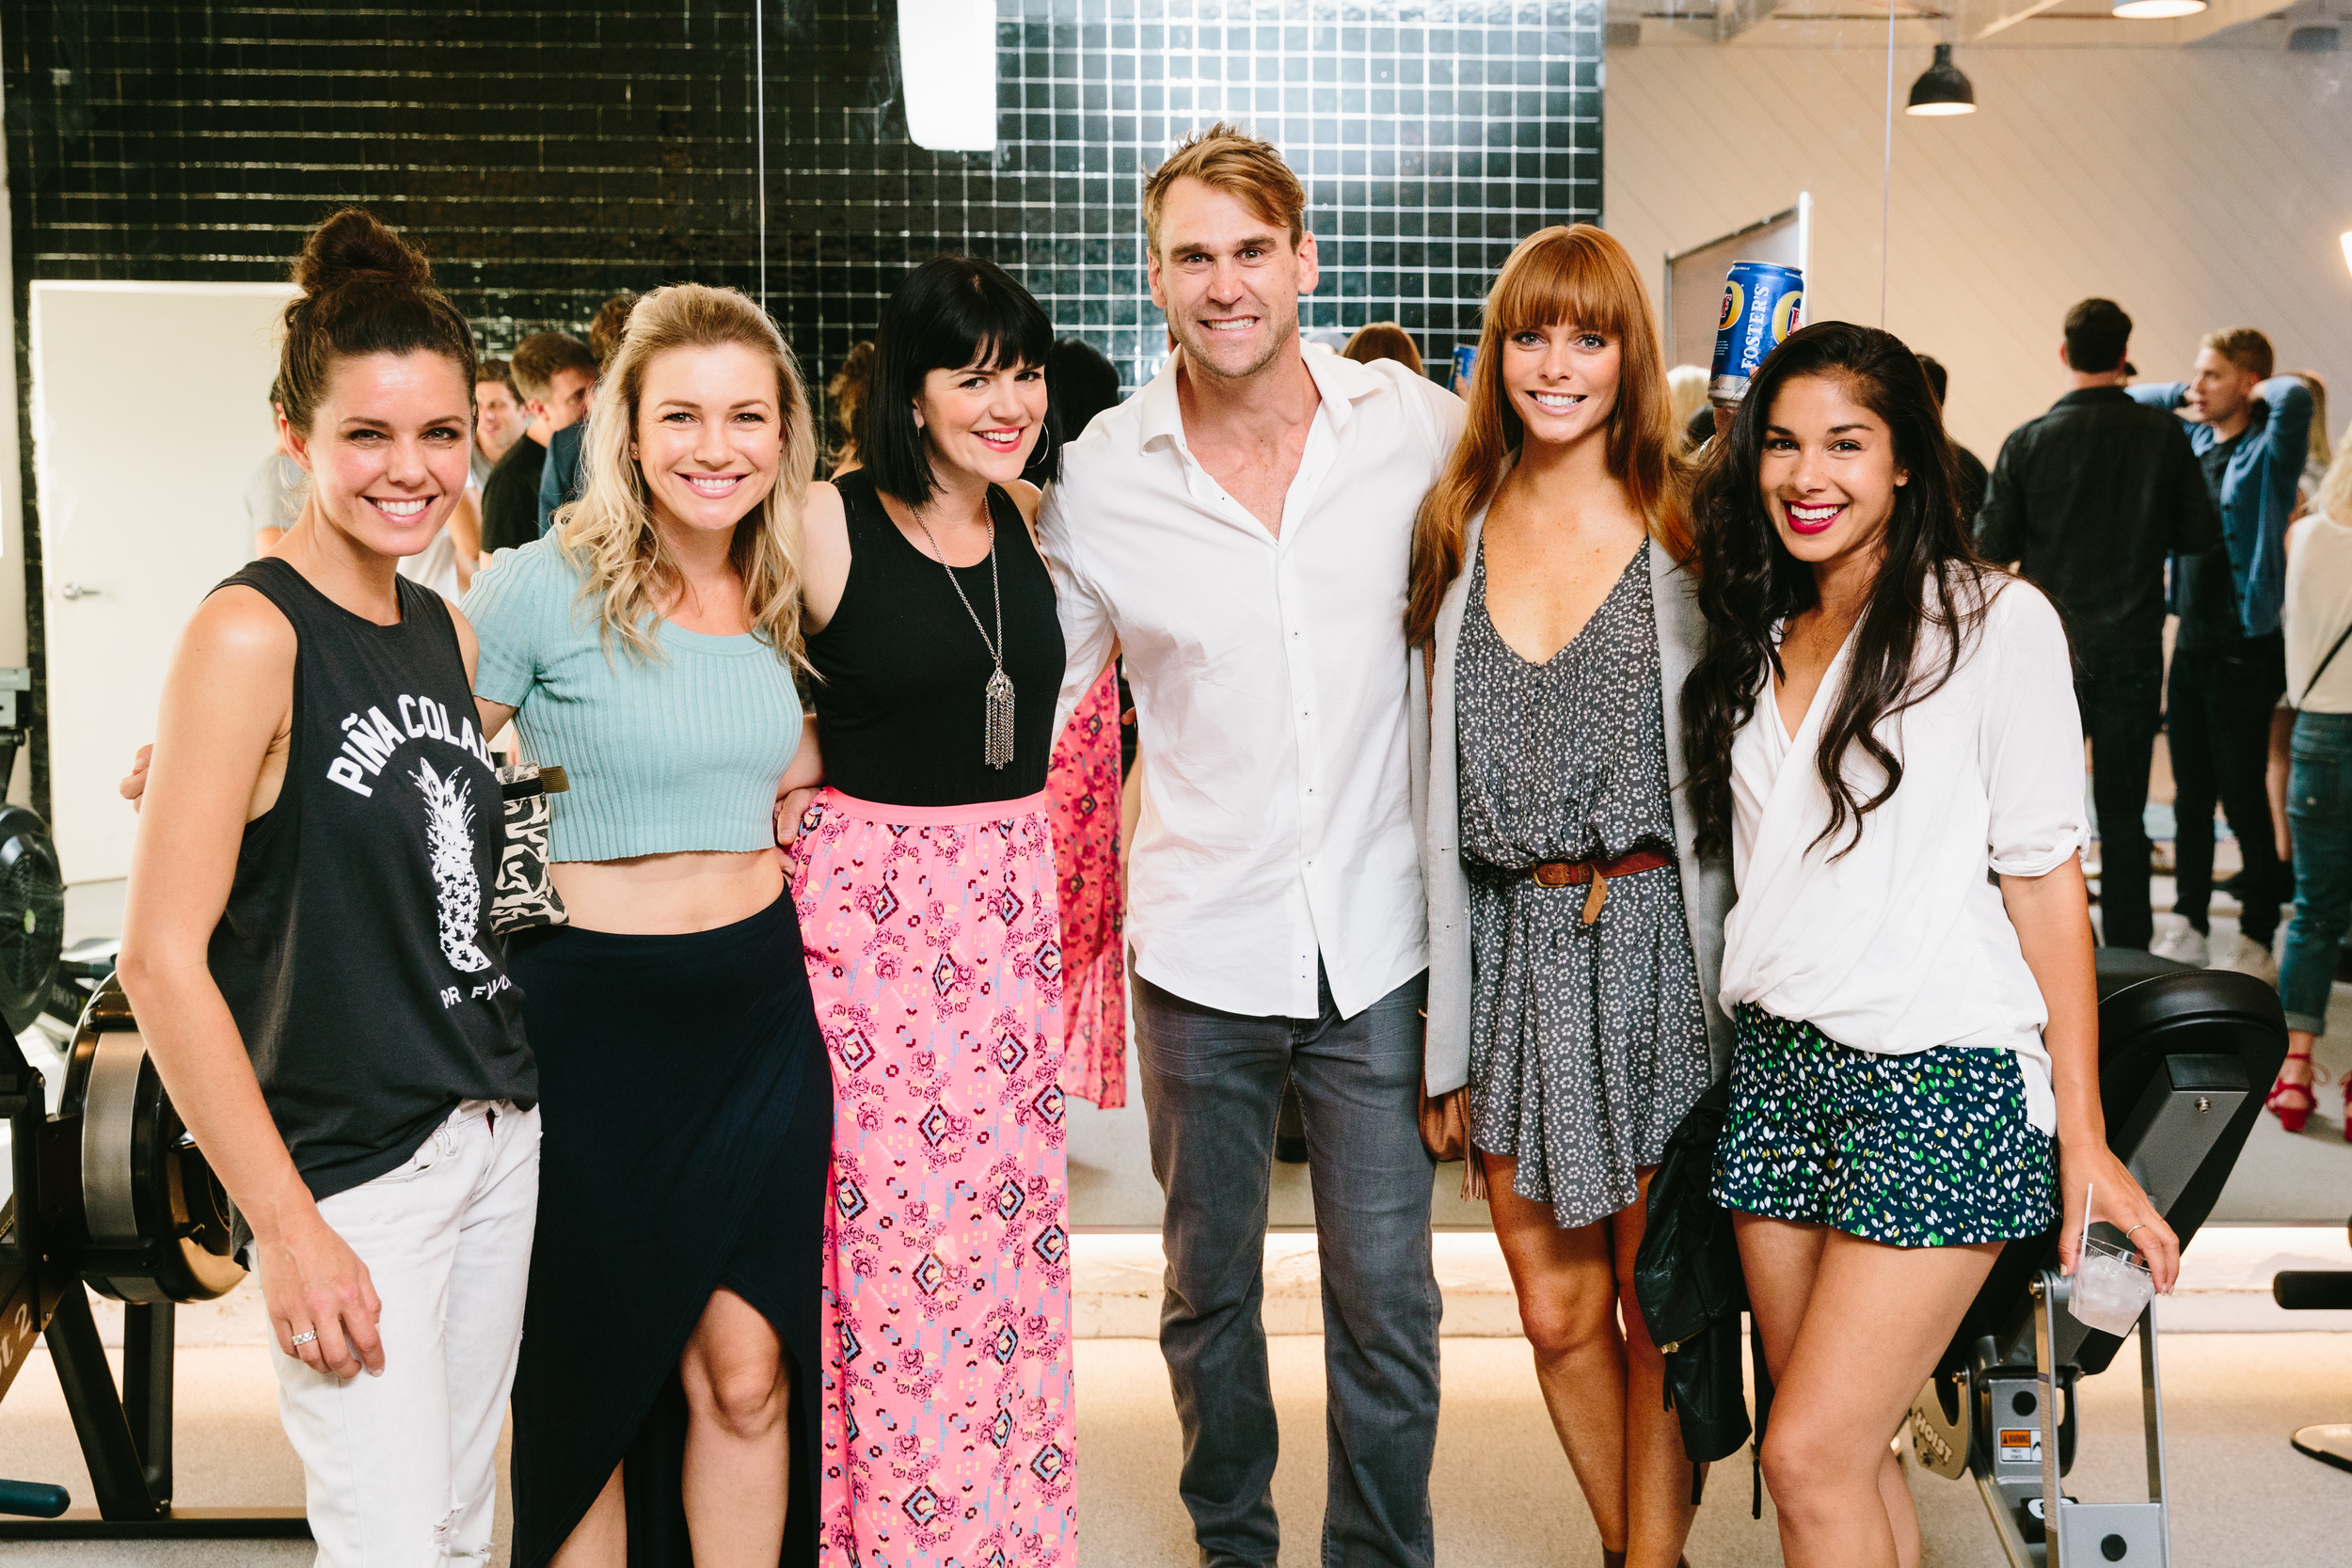 Luke Milton along with Chloe Hurst (on Luke's left) and other guests